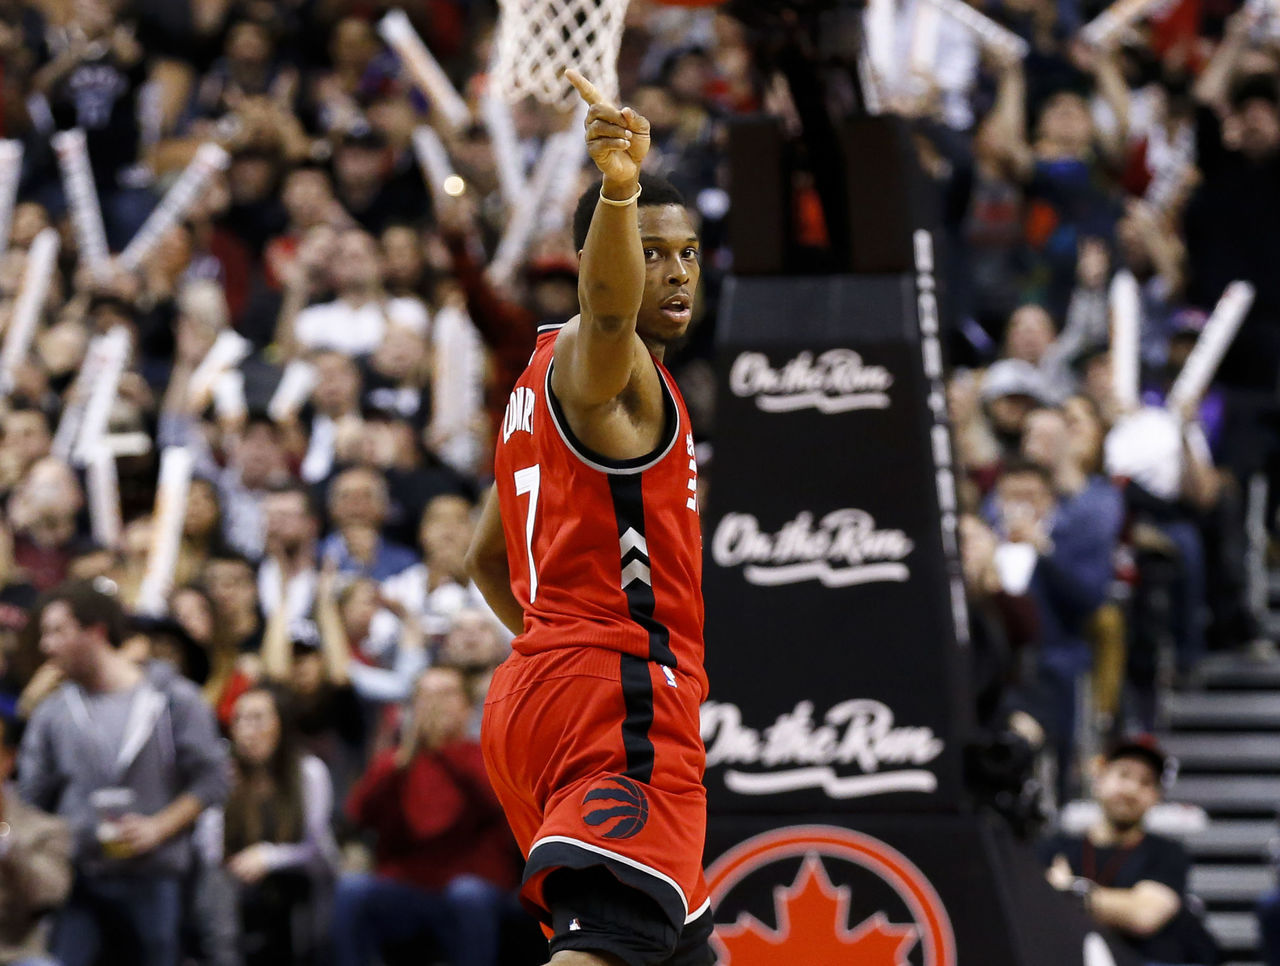 Cropped 2017 02 01t031649z 2021387190 nocid rtrmadp 3 nba new orleans pelicans at toronto raptors